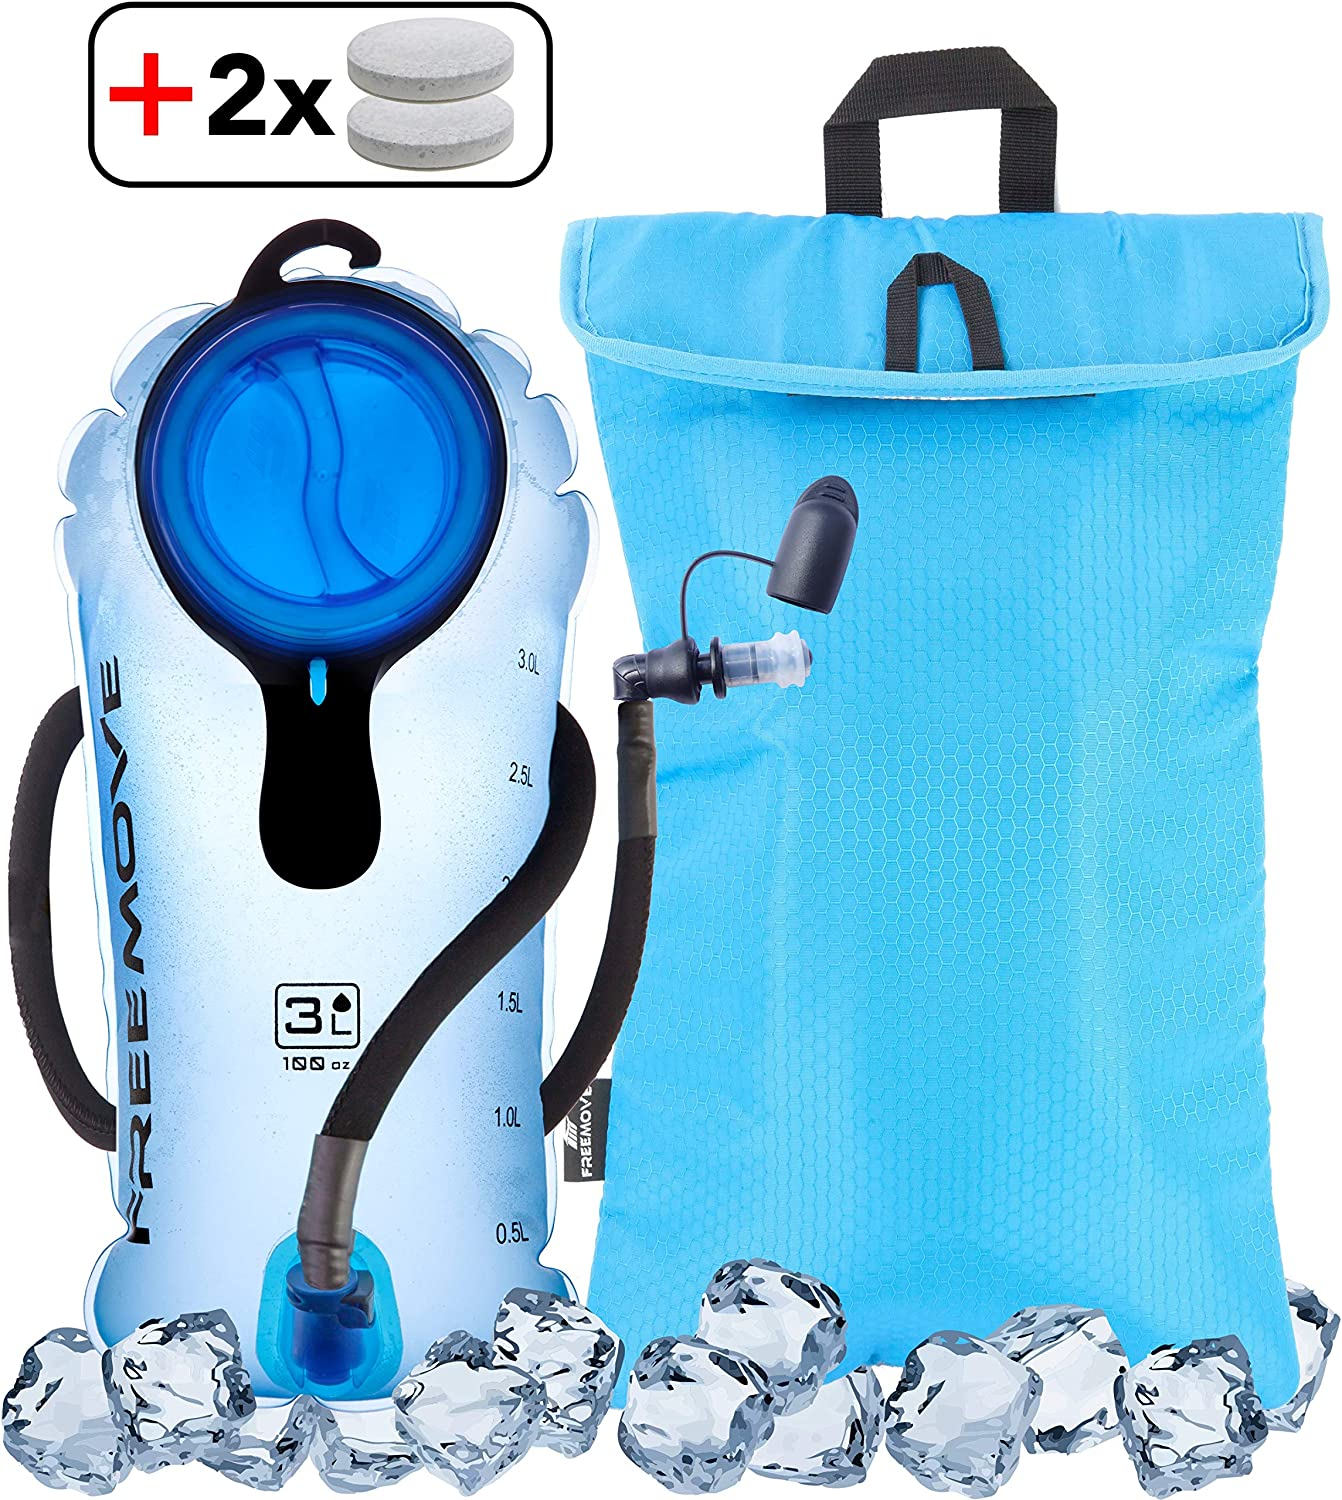 FREEMOVE 2L or 3L Hydration Bladder Cooler Bag Keeps Drink Cool Protects Bladder or Replacement Bite Valve Leak Proof Water Reservoir Tasteless TPU Quick Release Tube Shutoff Valve